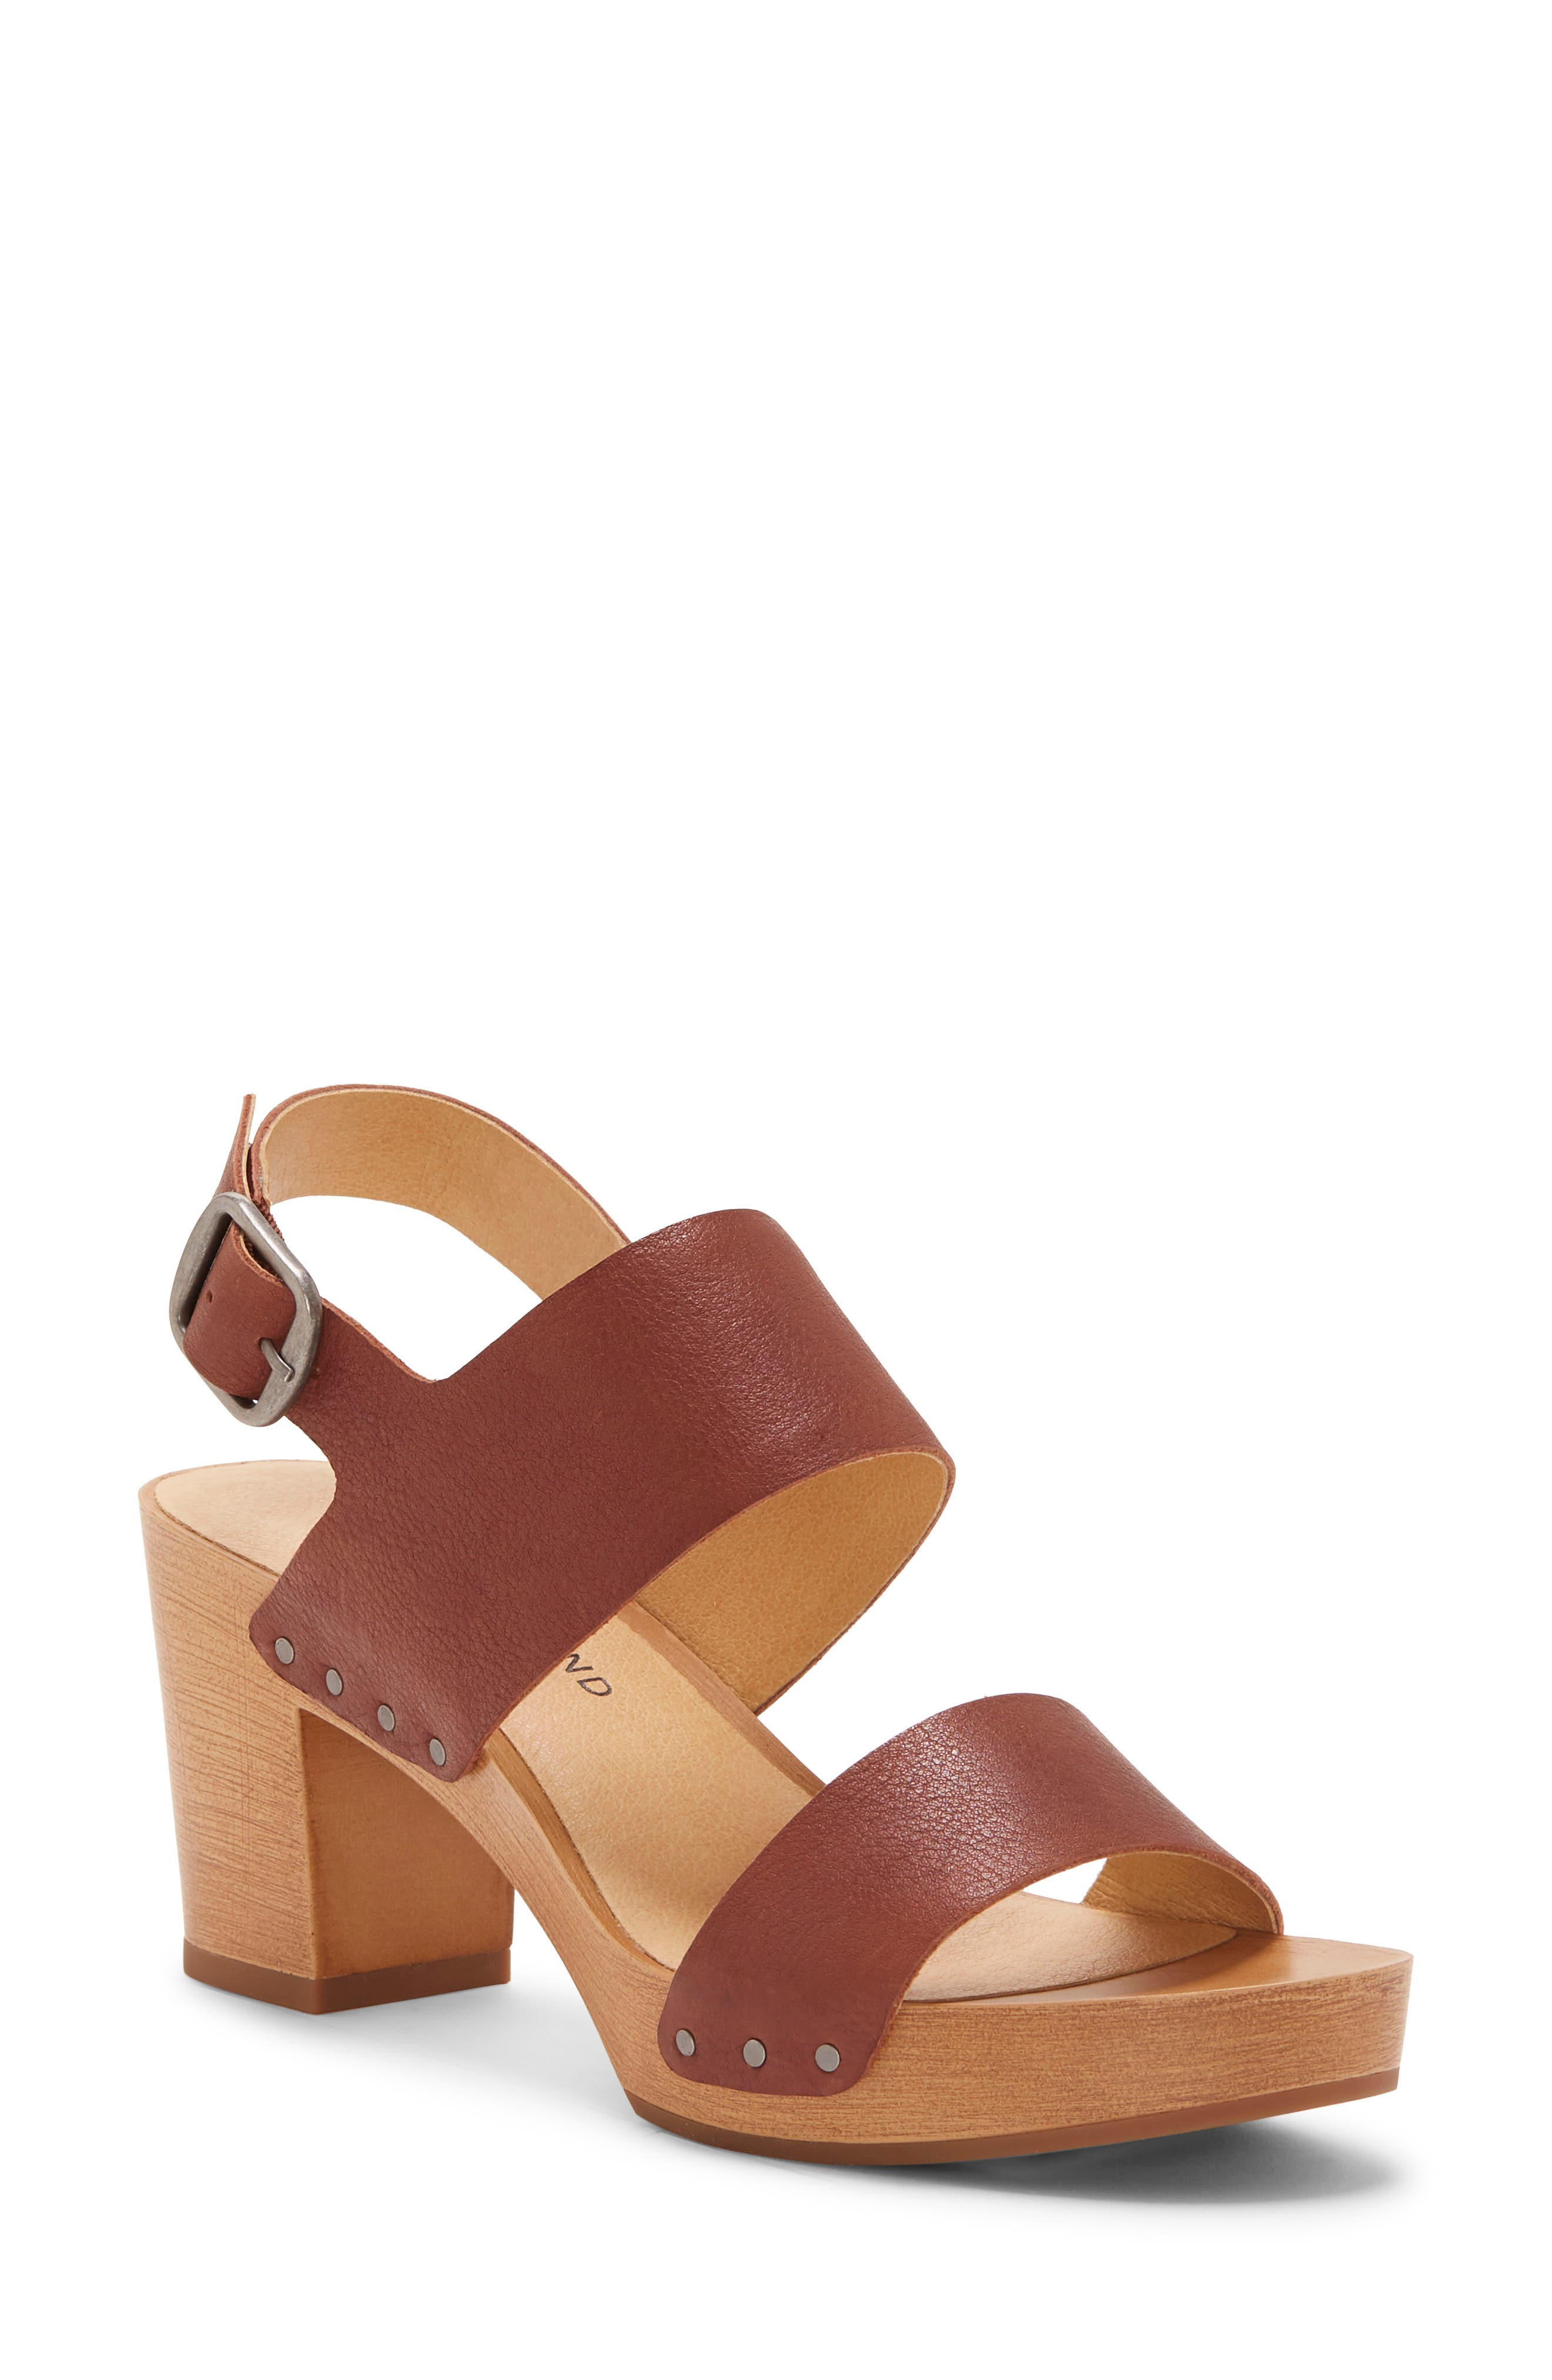 A single-piece woodgrain heel and platform further the \\\'70s-inspired appeal of a breezy clog-inspired sandal styled with smooth leather straps. Style Name: Lucky Brand Hemzi Sandal (Women). Style Number: 5958395. Available in stores.